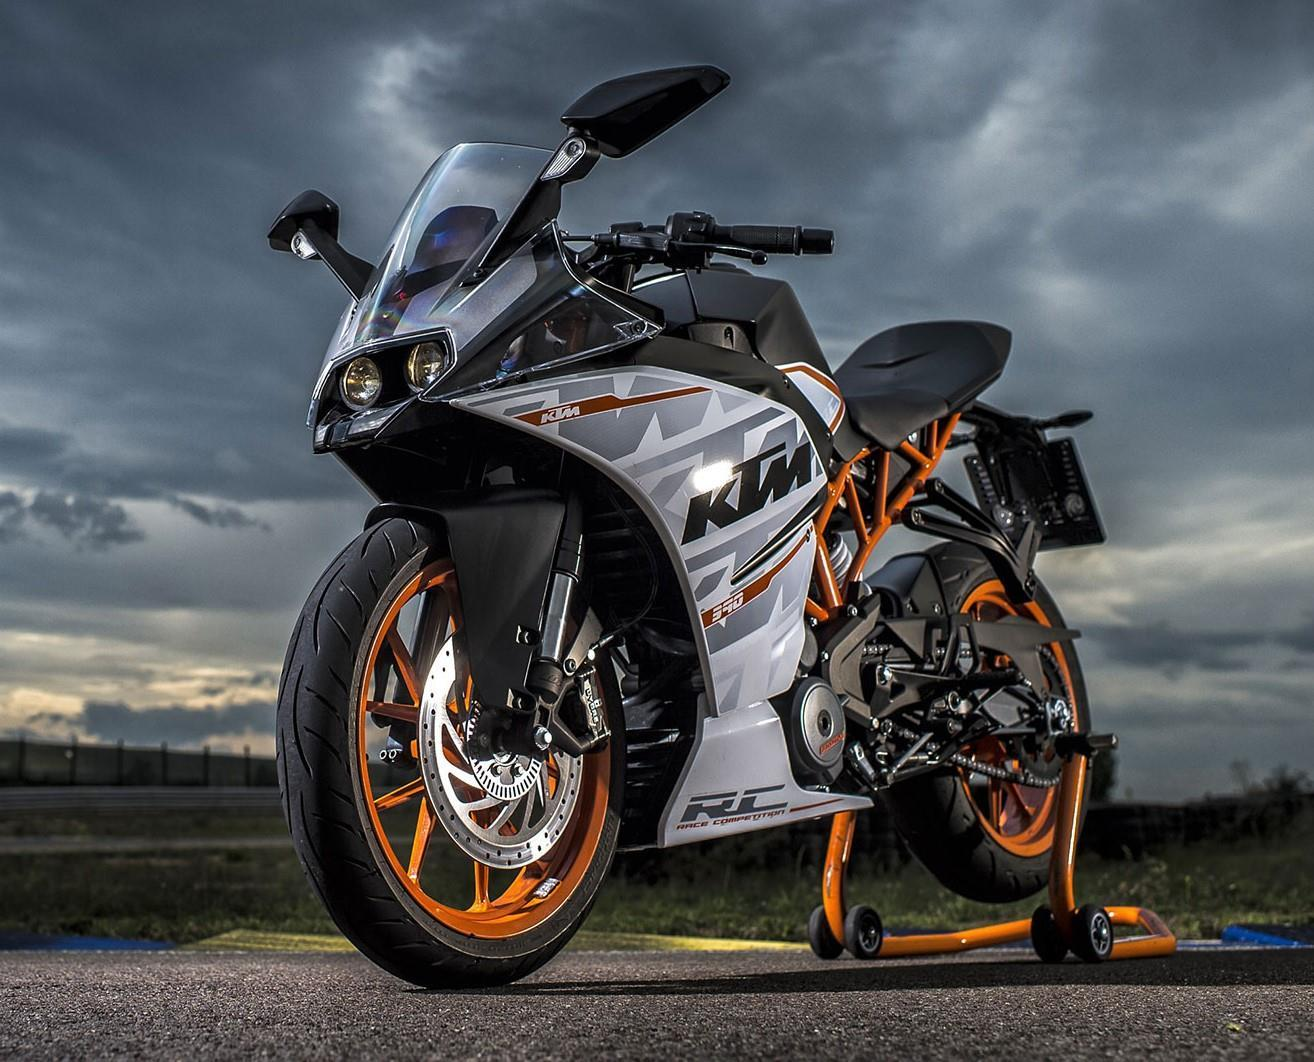 KTM RC 390: List of Pros & Cons